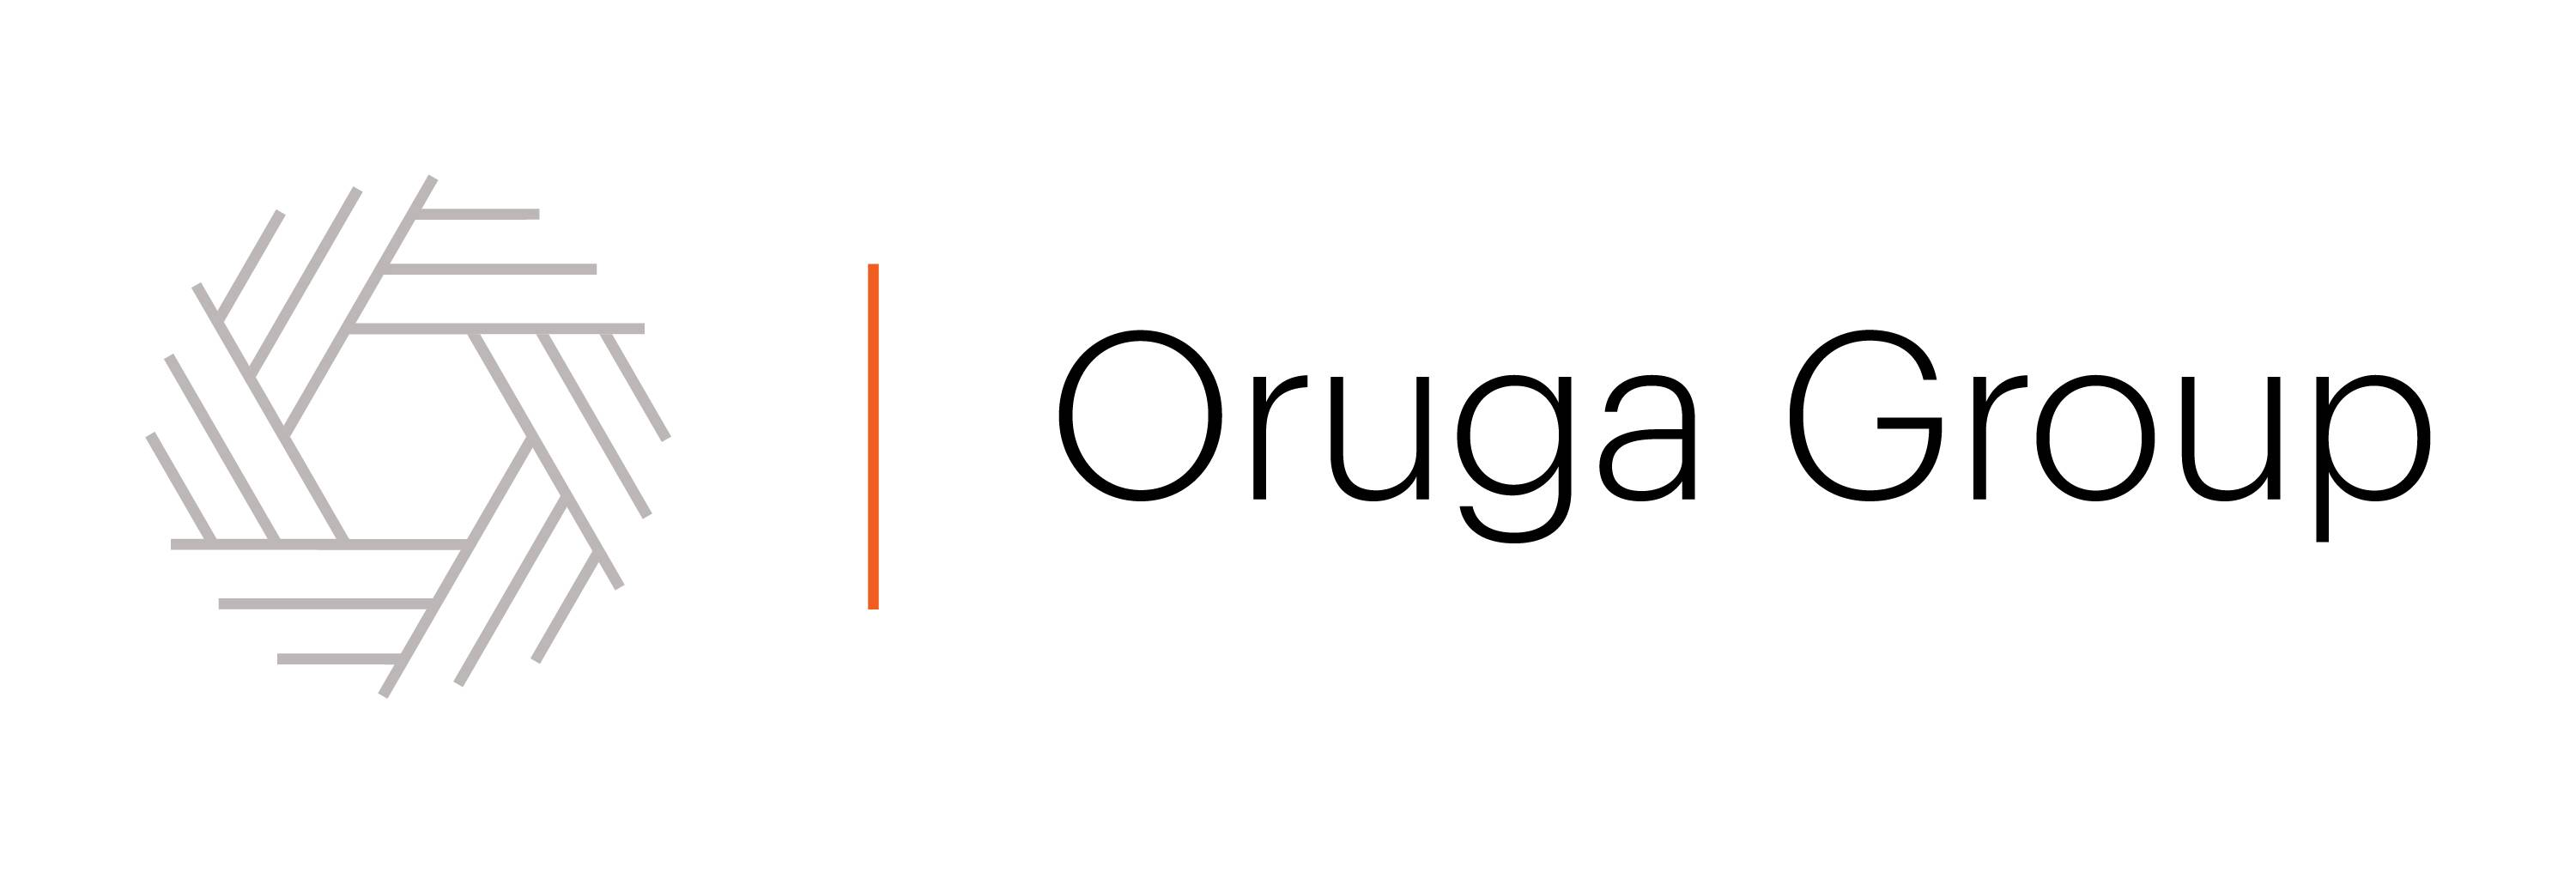 Oruga Group